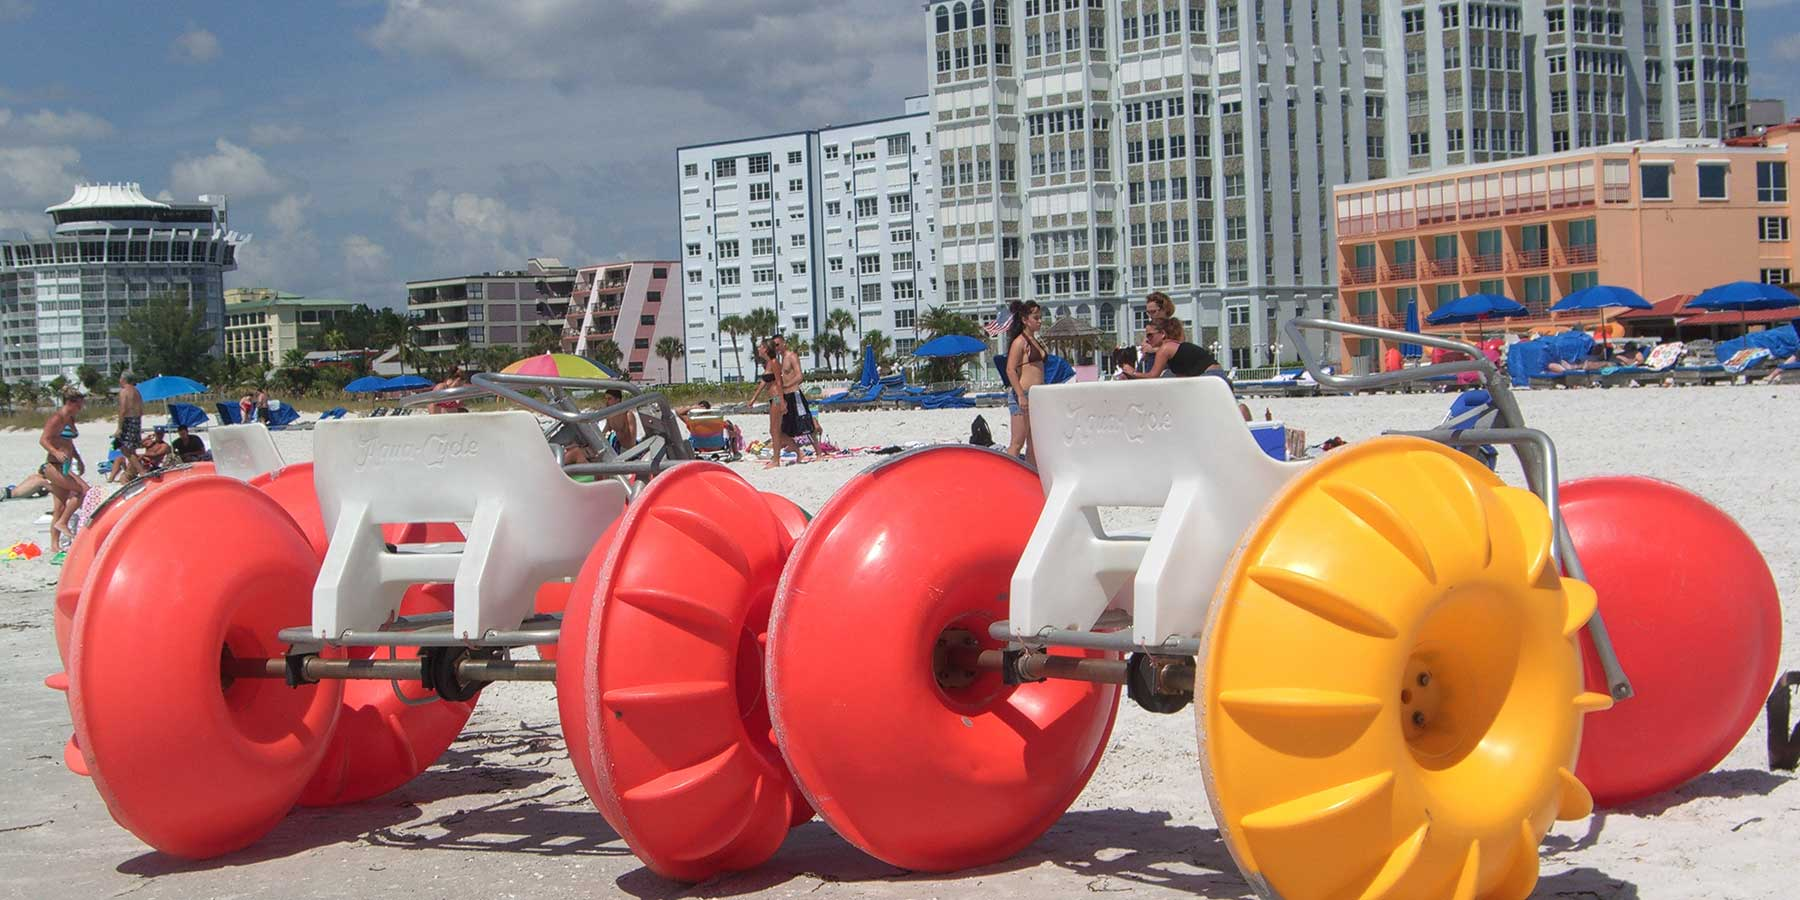 Aqua-Cycles on the beach ready to be rented to tourists.